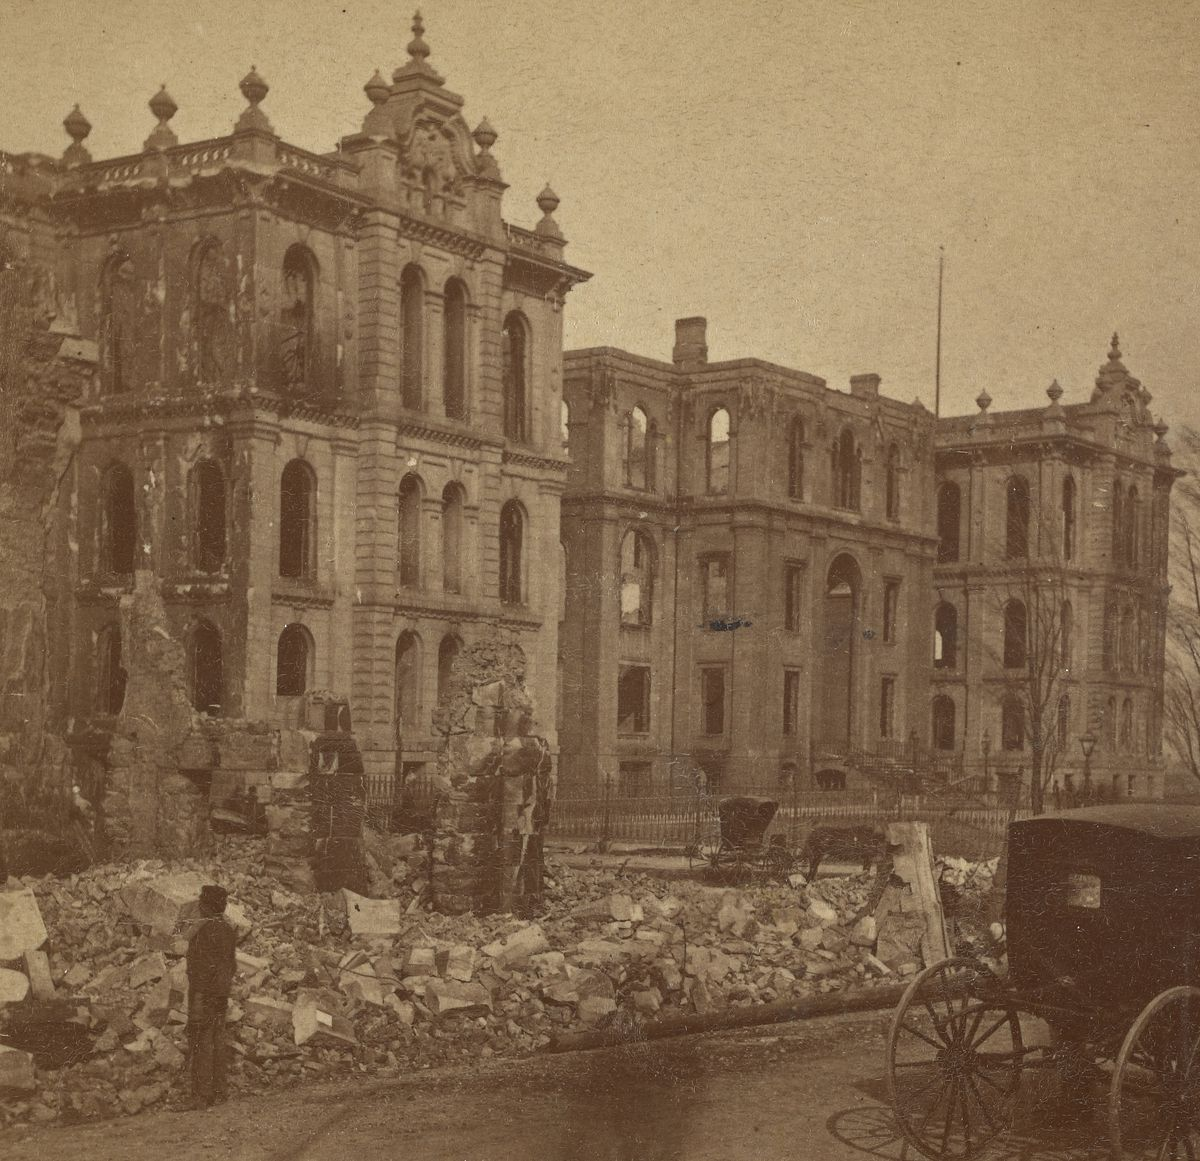 The burned-out Cook County Courthouse after the Great Chicago Fire.